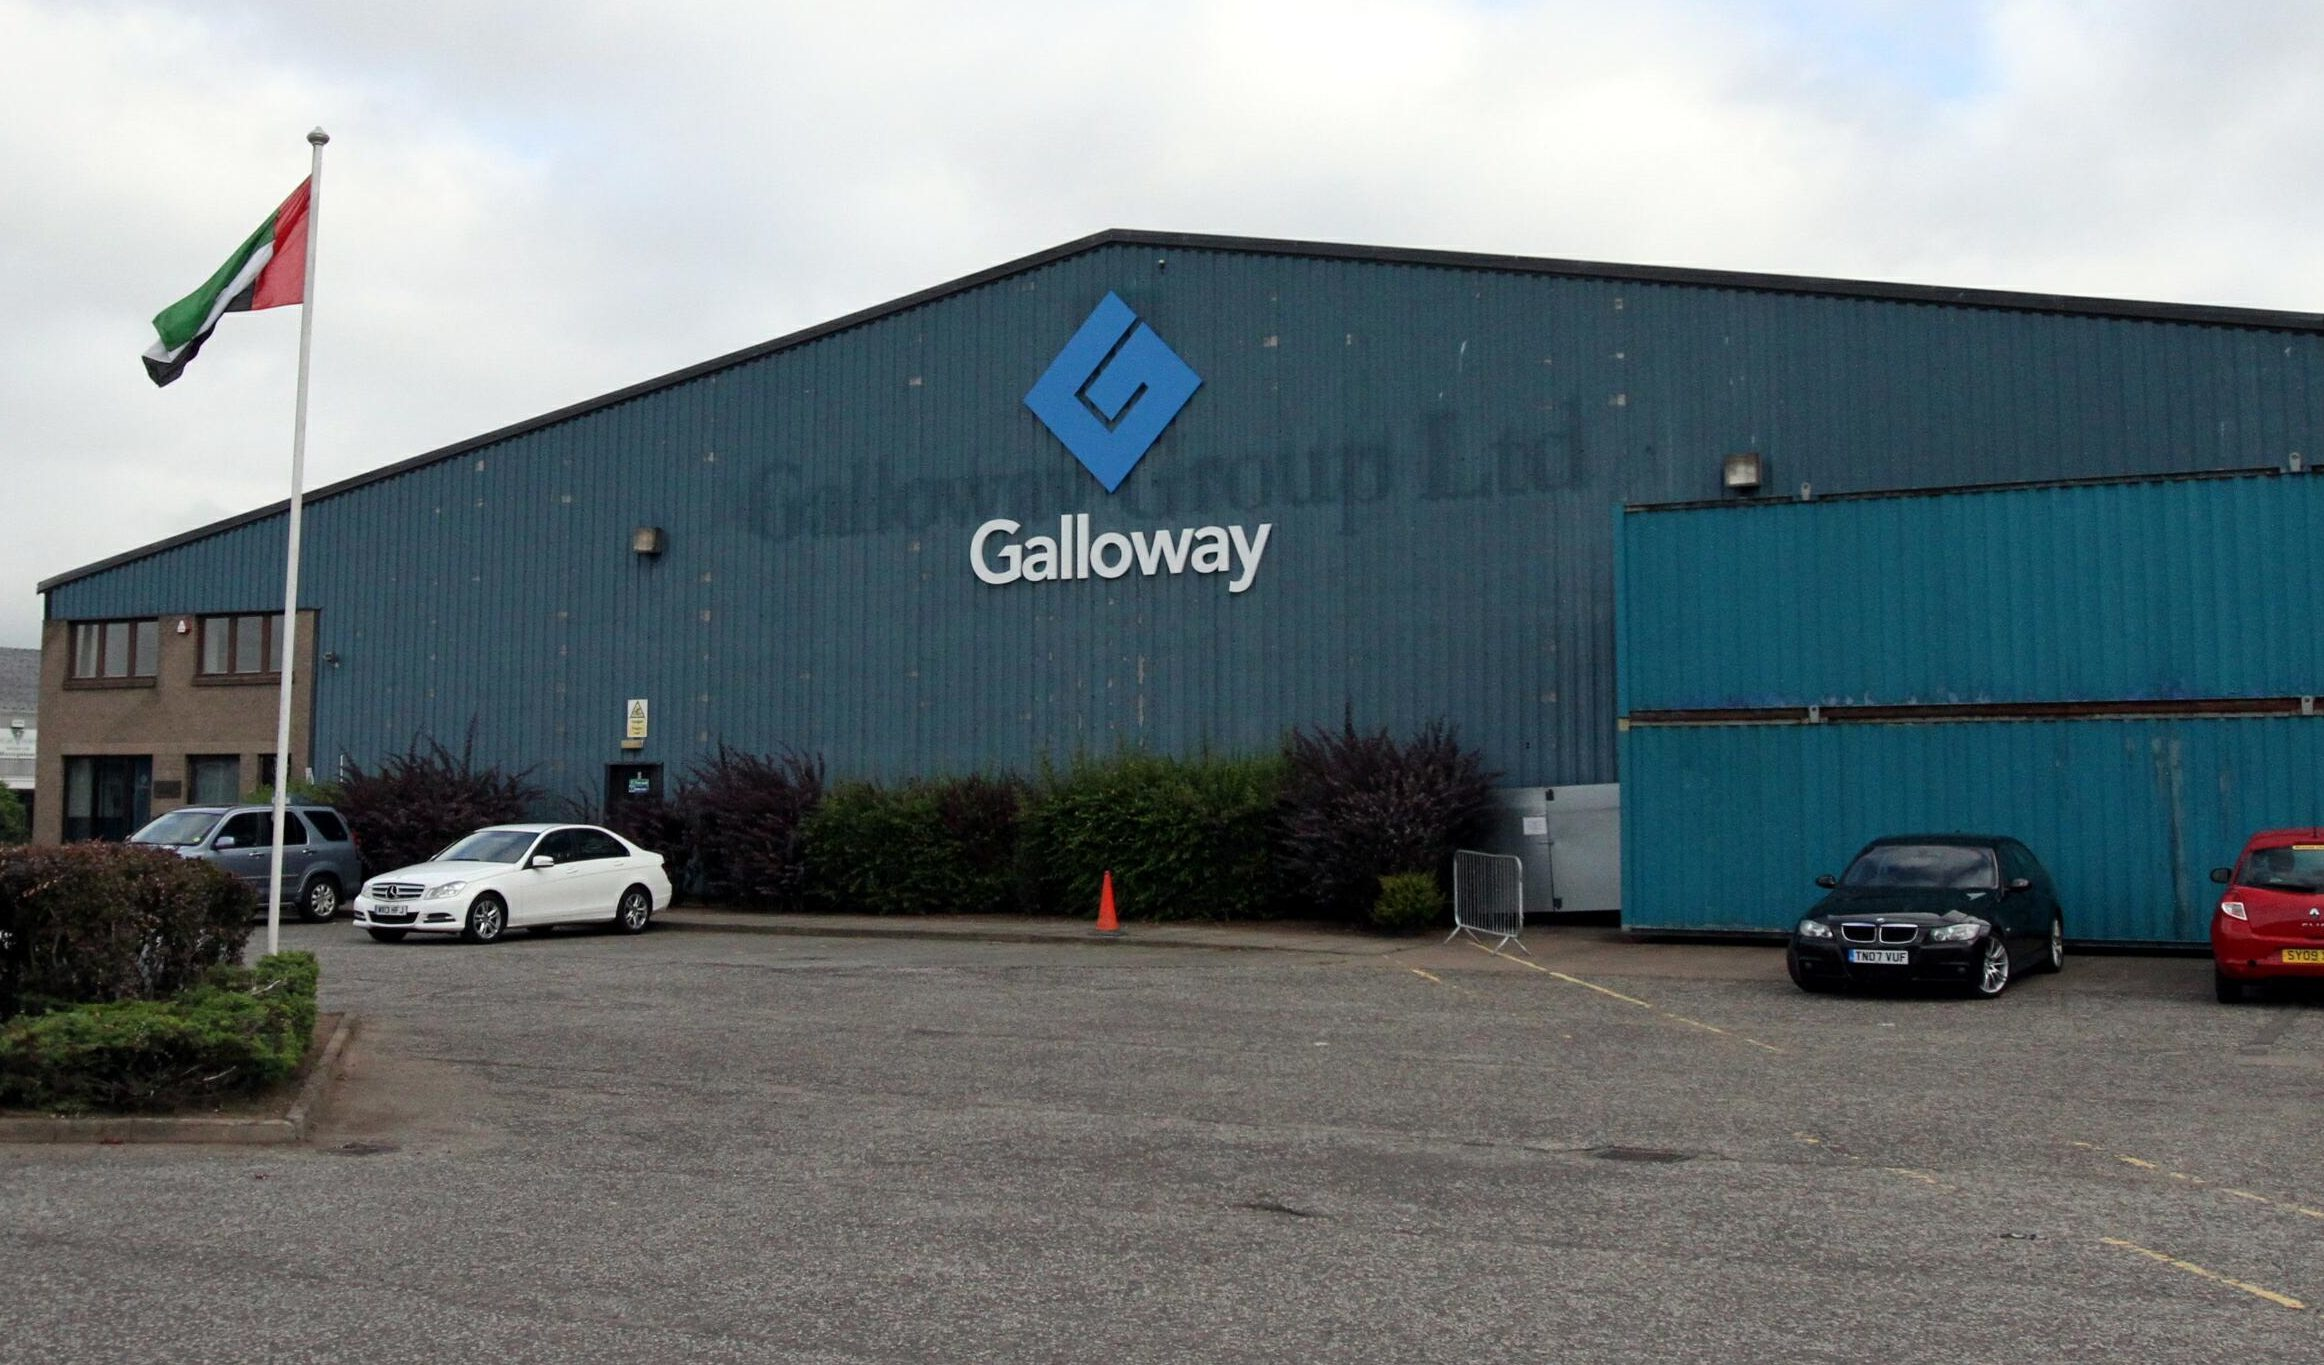 The Galloway Group factory at Wester Gourdie industrial estate.